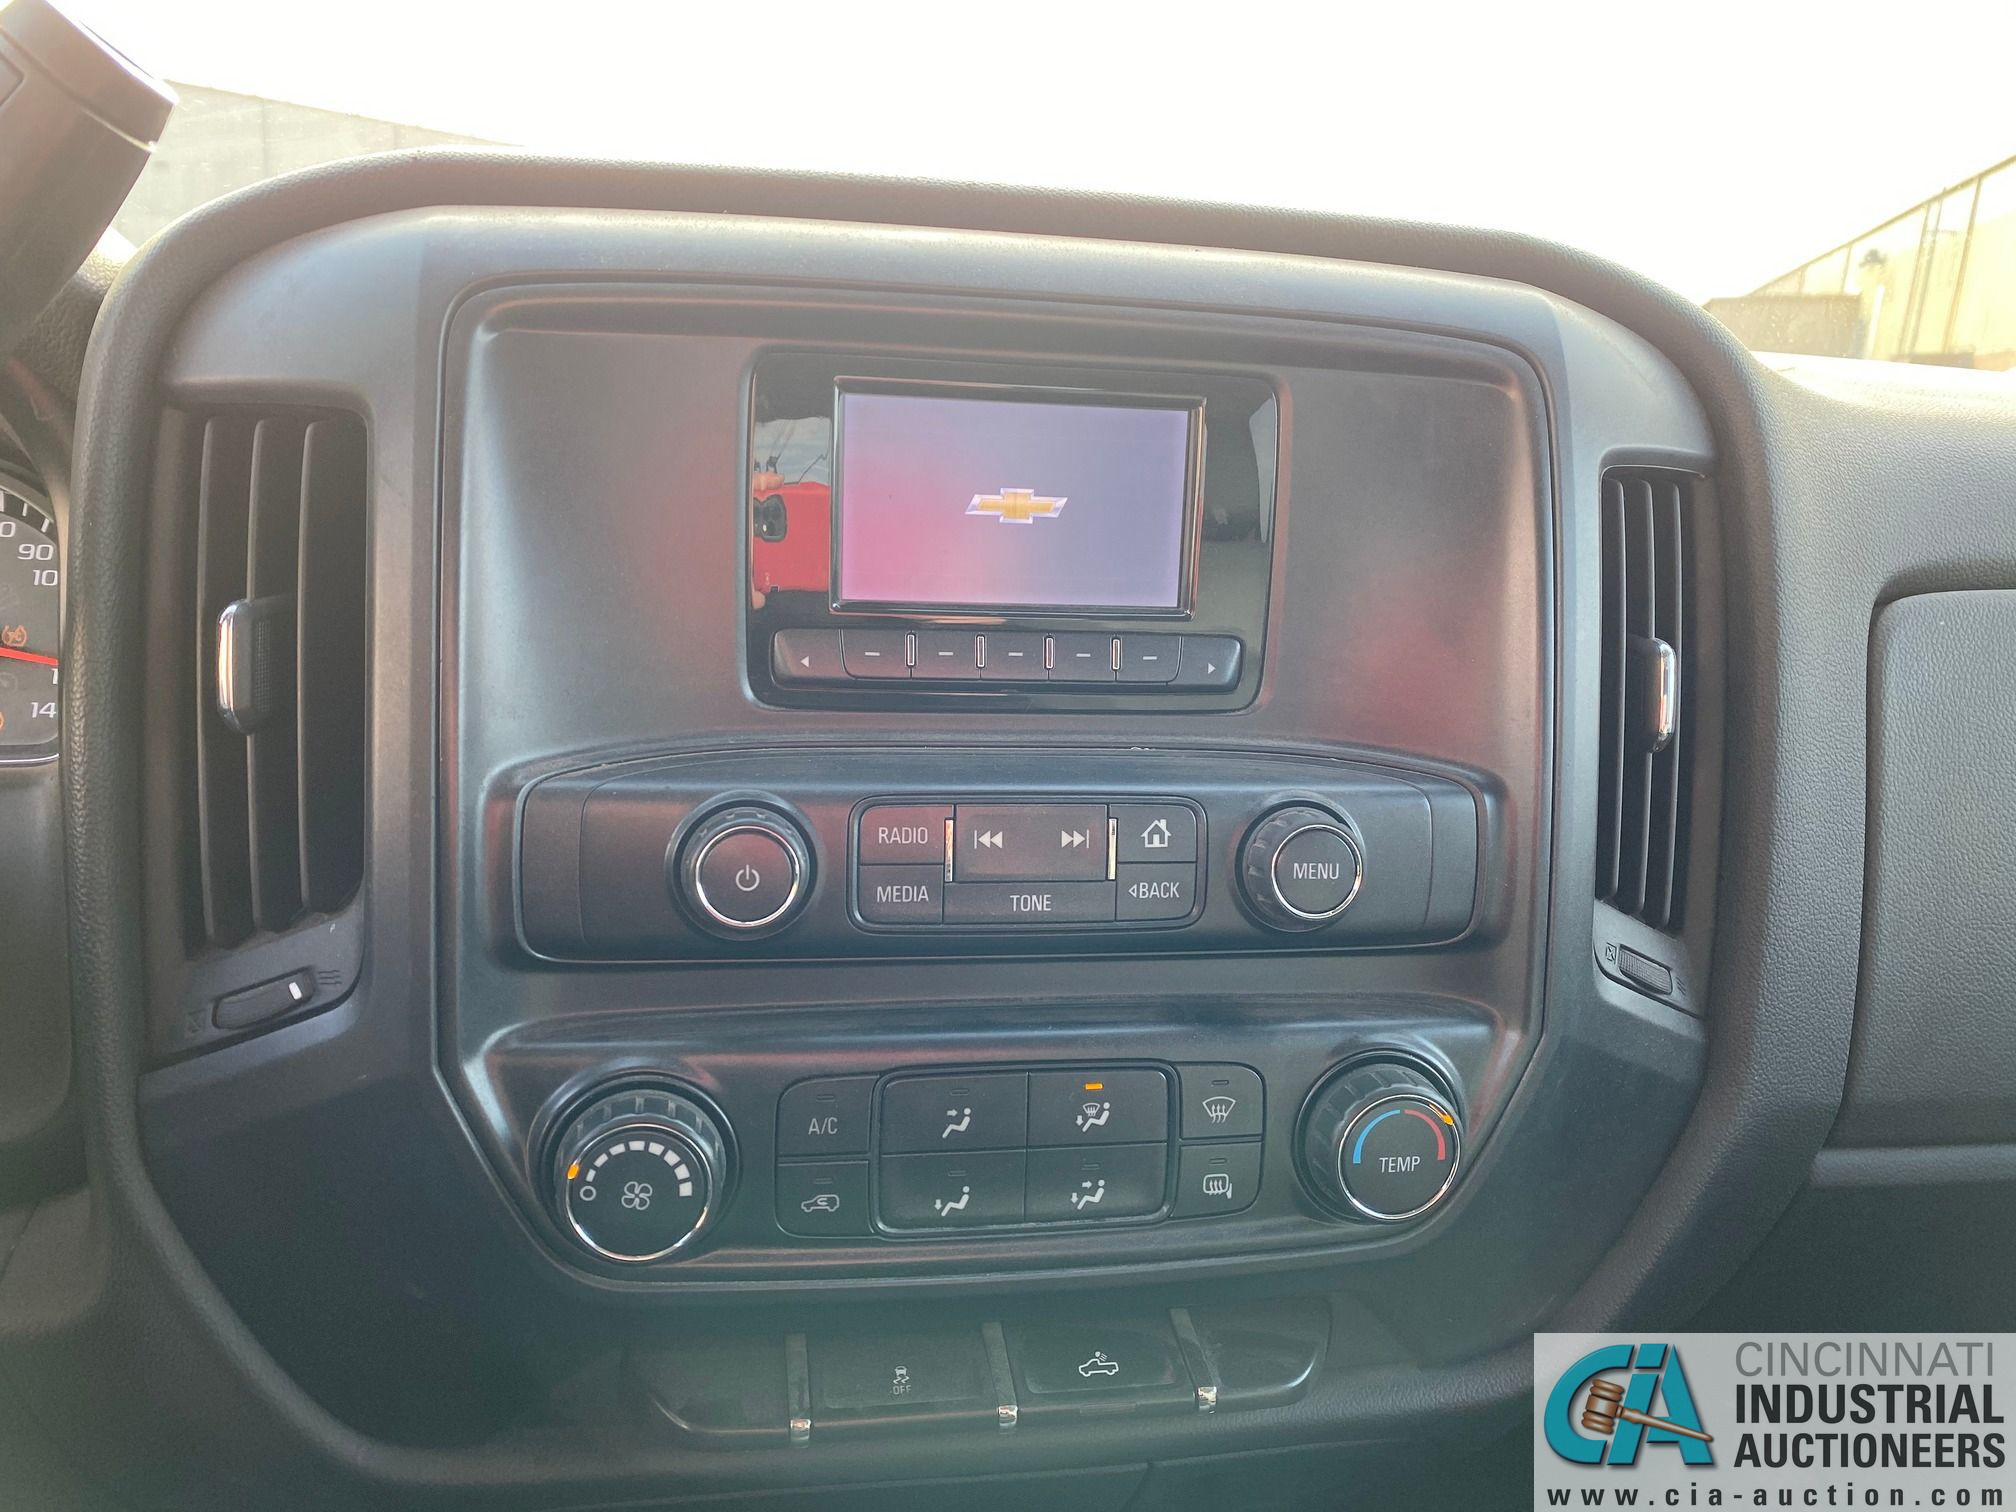 2014 CHEVROLET SILVERADO 1500 PICK UP TRUCK; VIN# 1GCRCPEH1EZ239274, 67,252 MILES SHOWING, 4.3 L, - Image 8 of 13